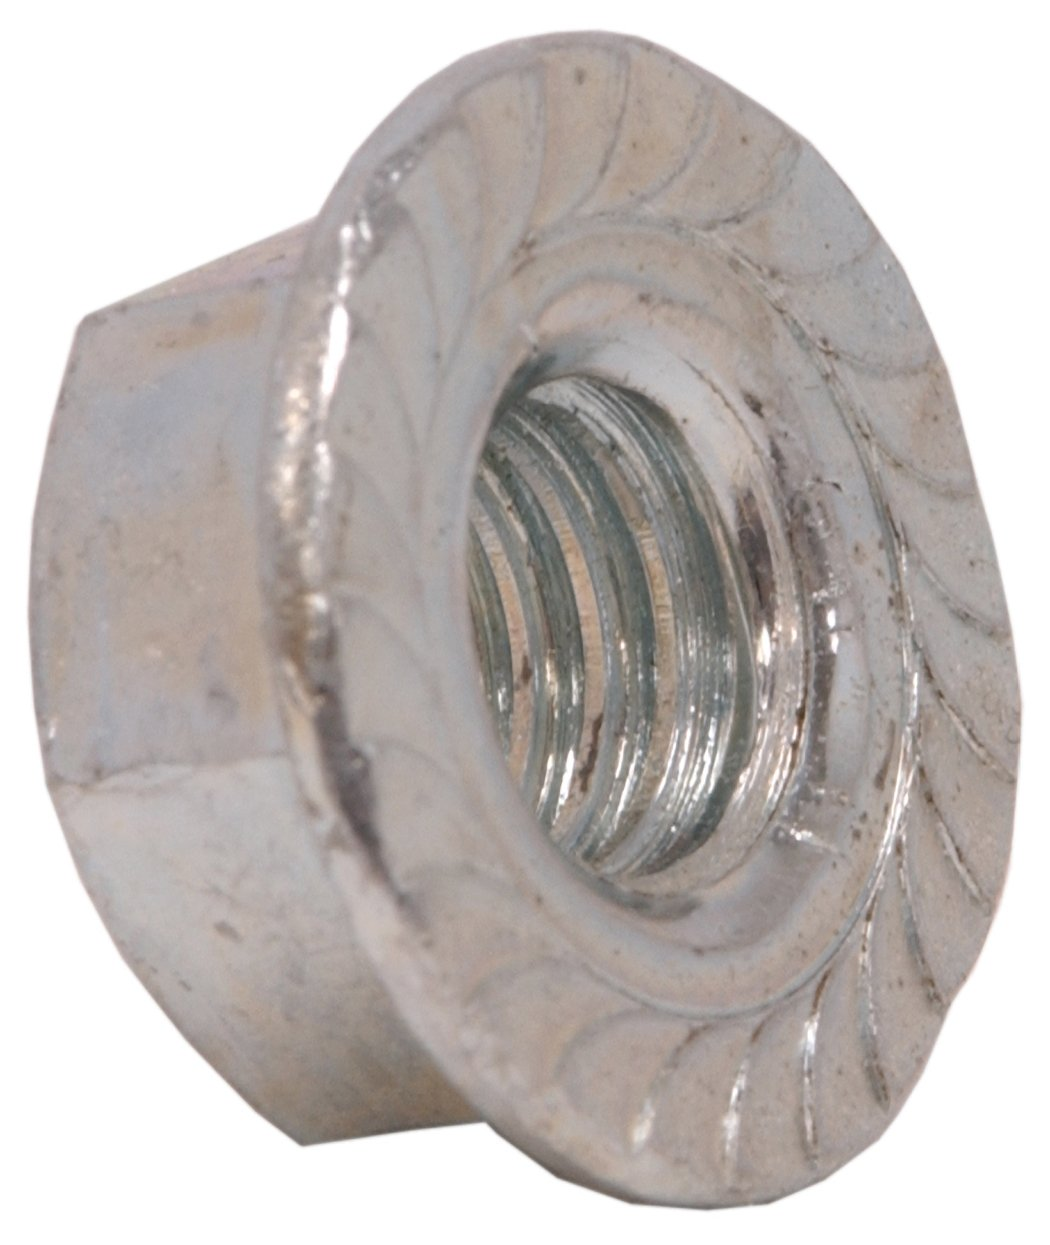 The Hillman Group 180396 1 1 1 1/4-20 Whiz Lock Nut, 100-Pack